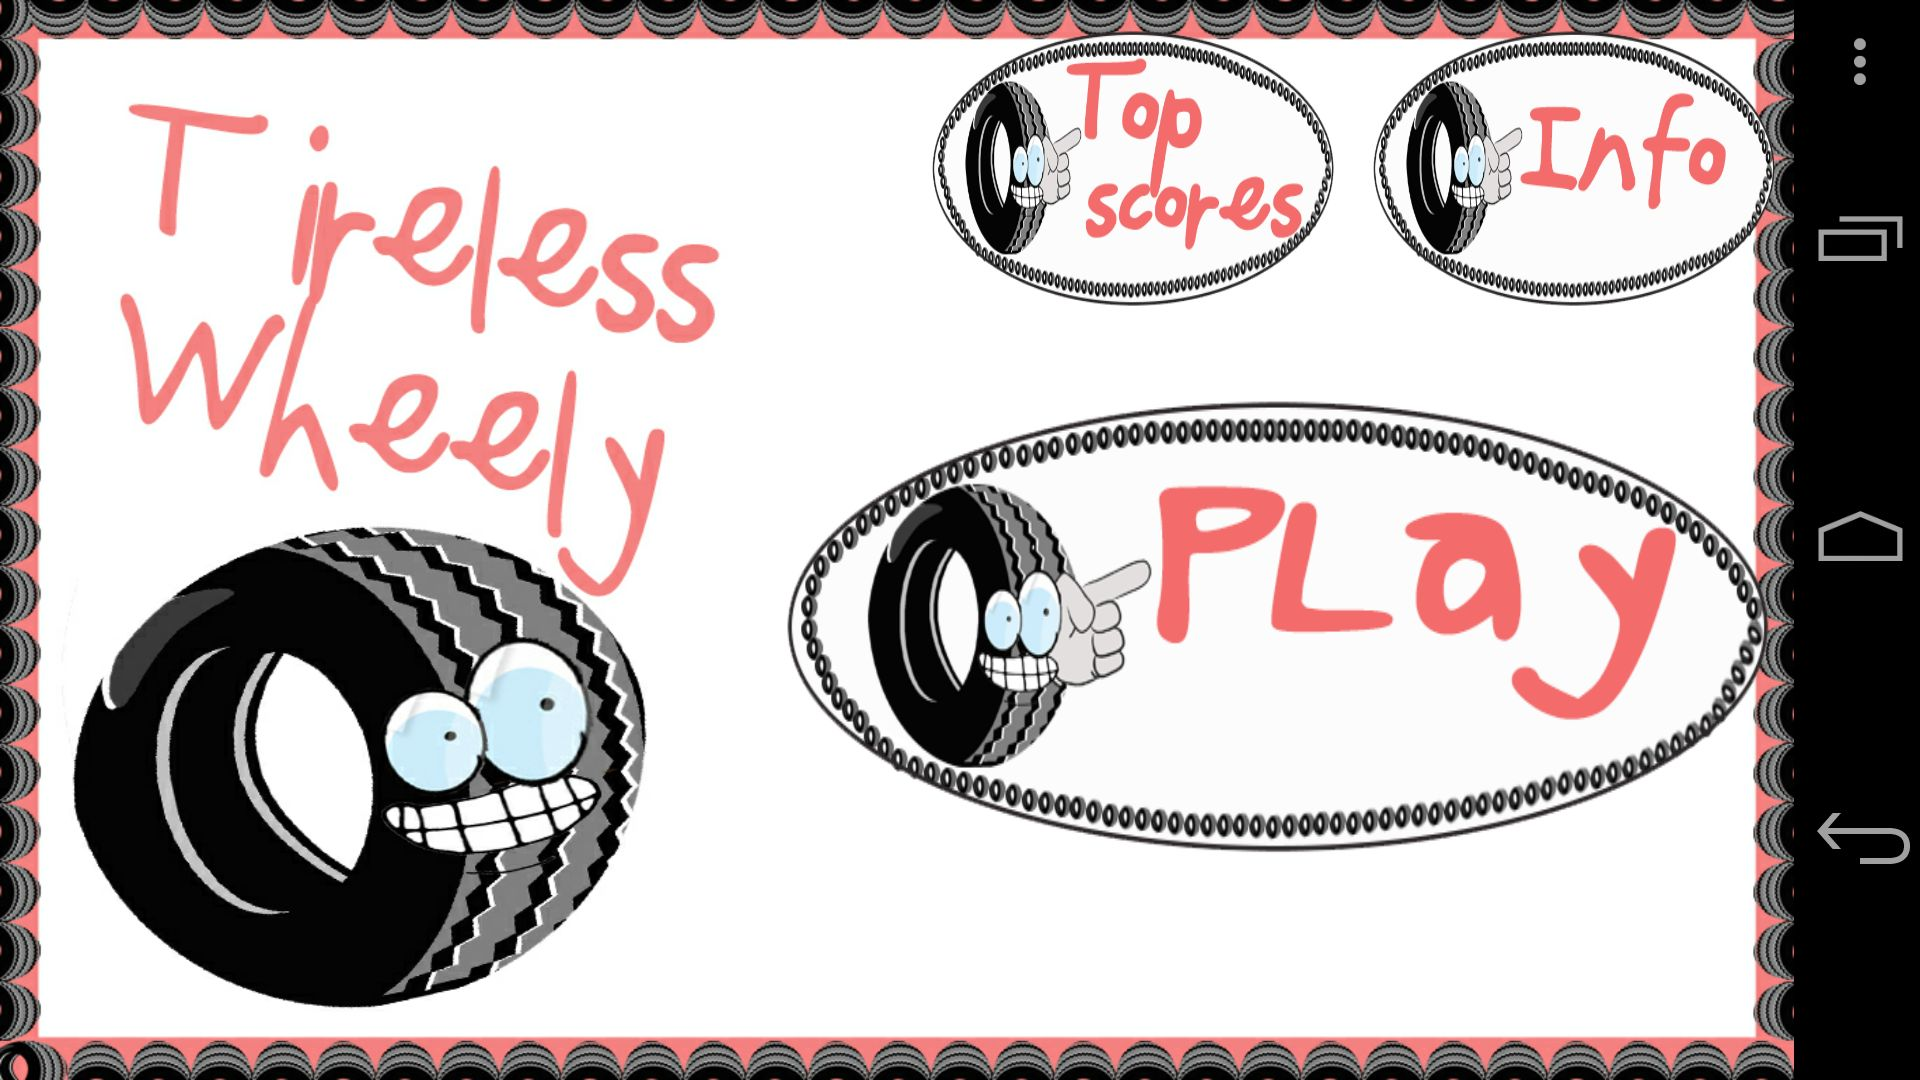 Tireless Wheely - Android Game Source Code Screenshot 1